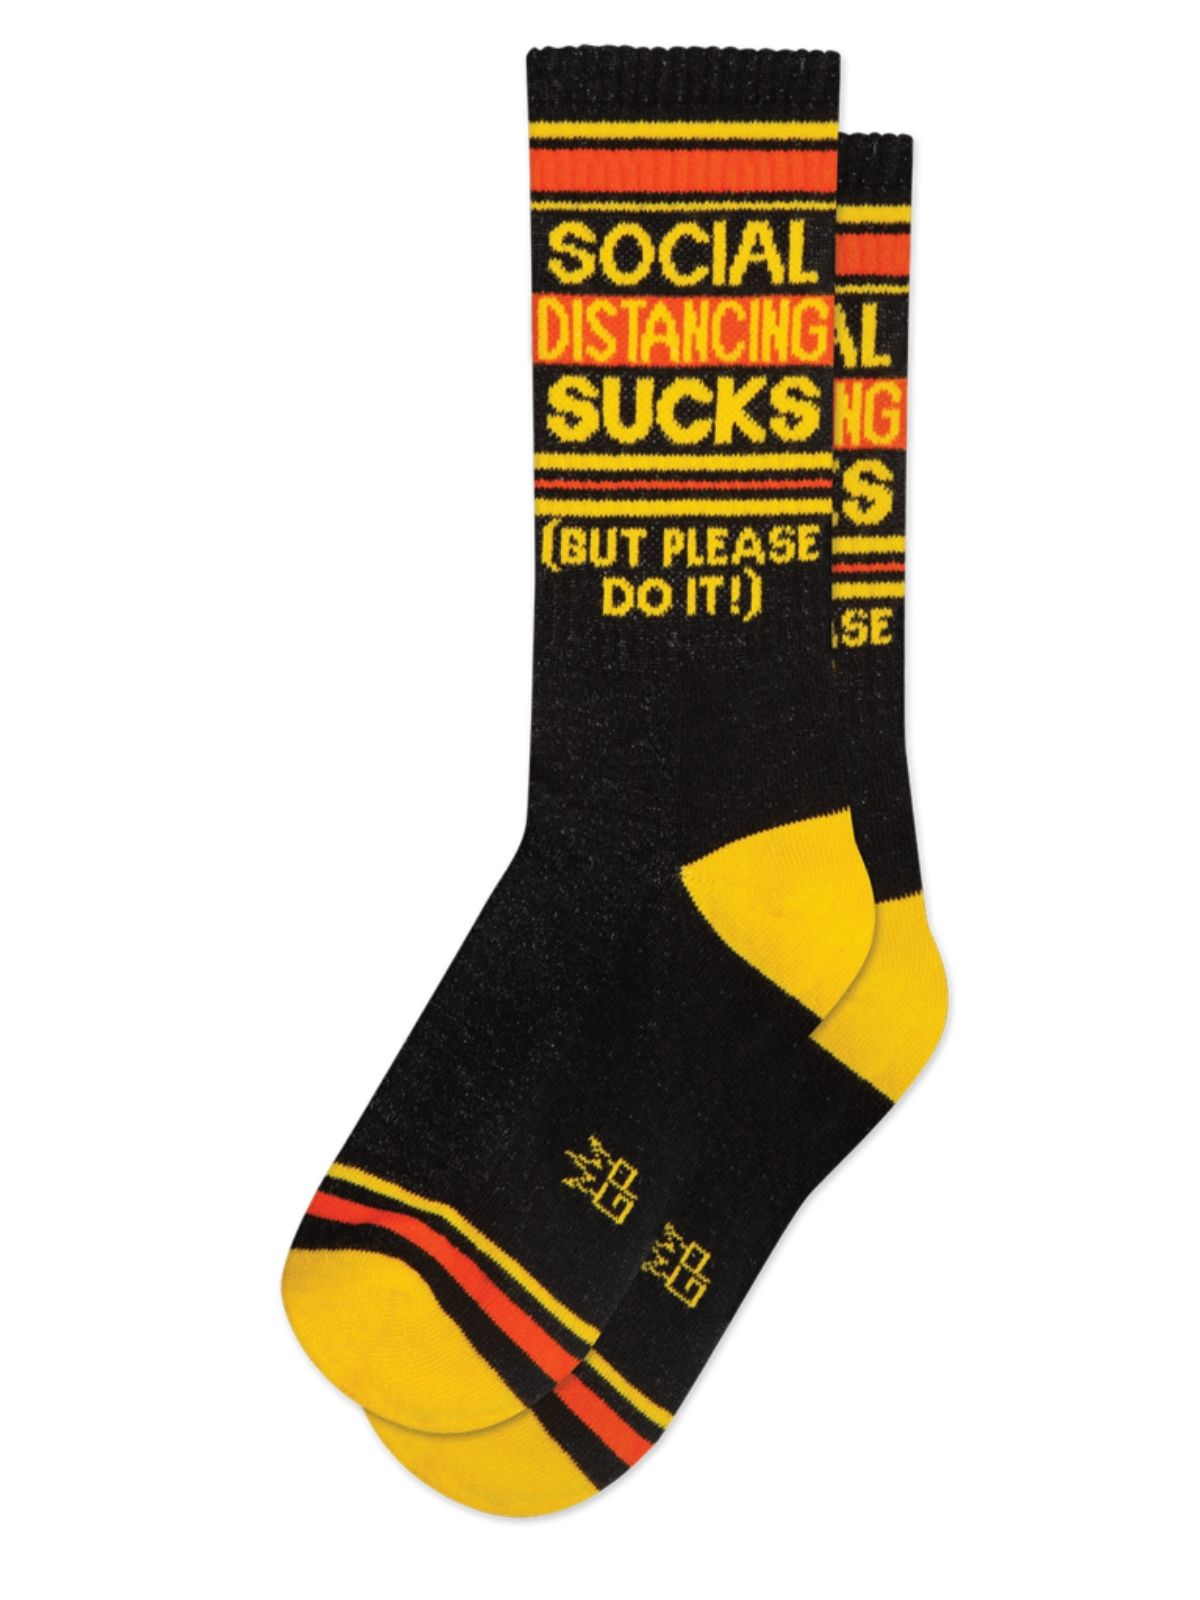 Social Distancing Socks